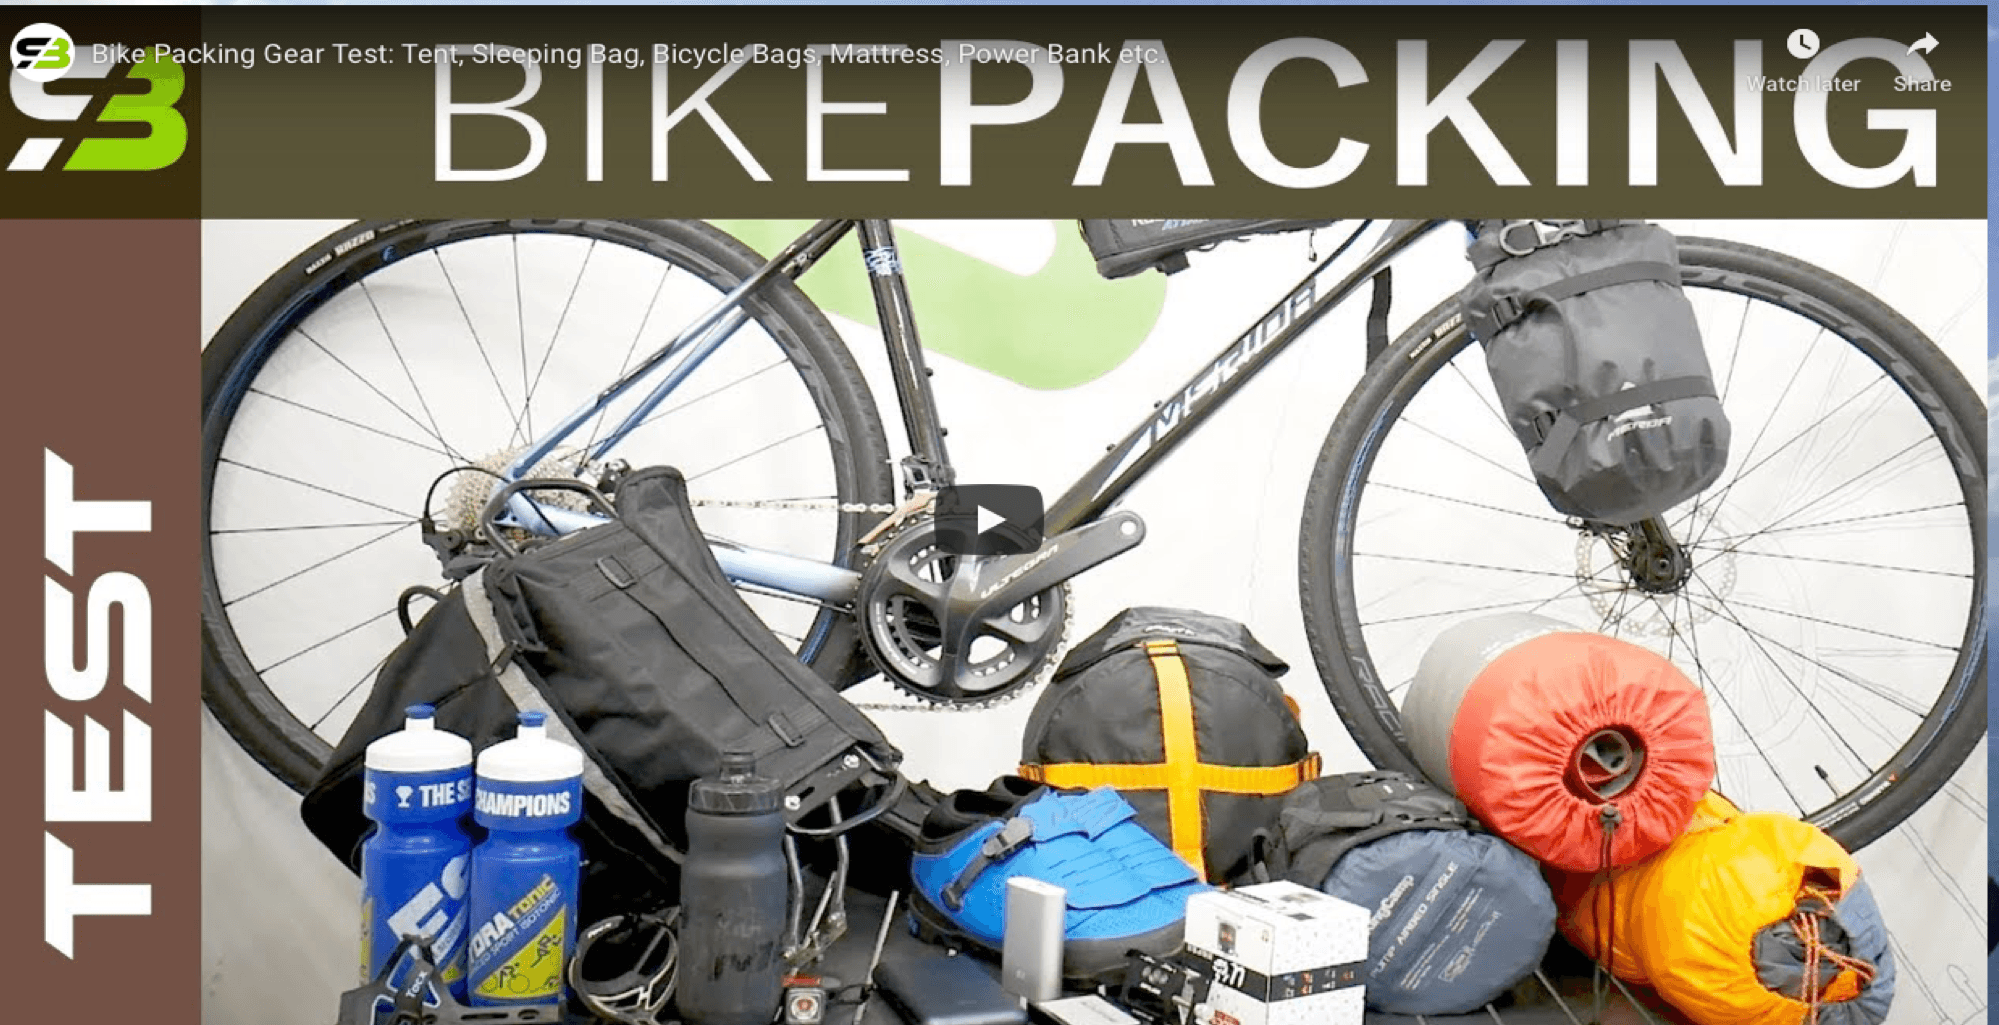 Bike Camping And Packing